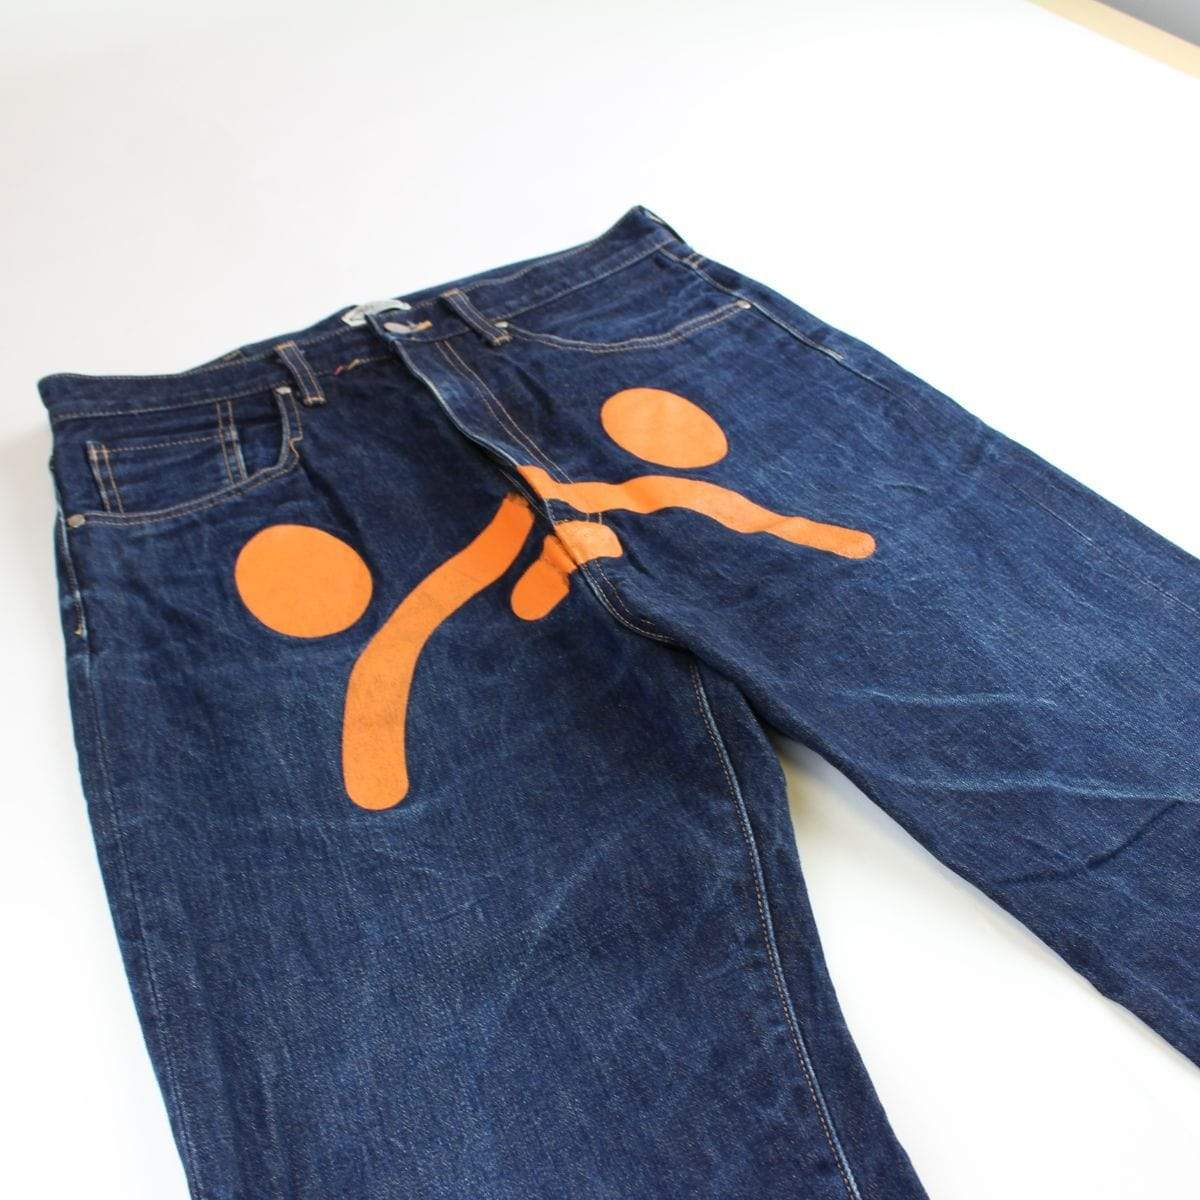 bape orange milo denim jeans - SaruGeneral